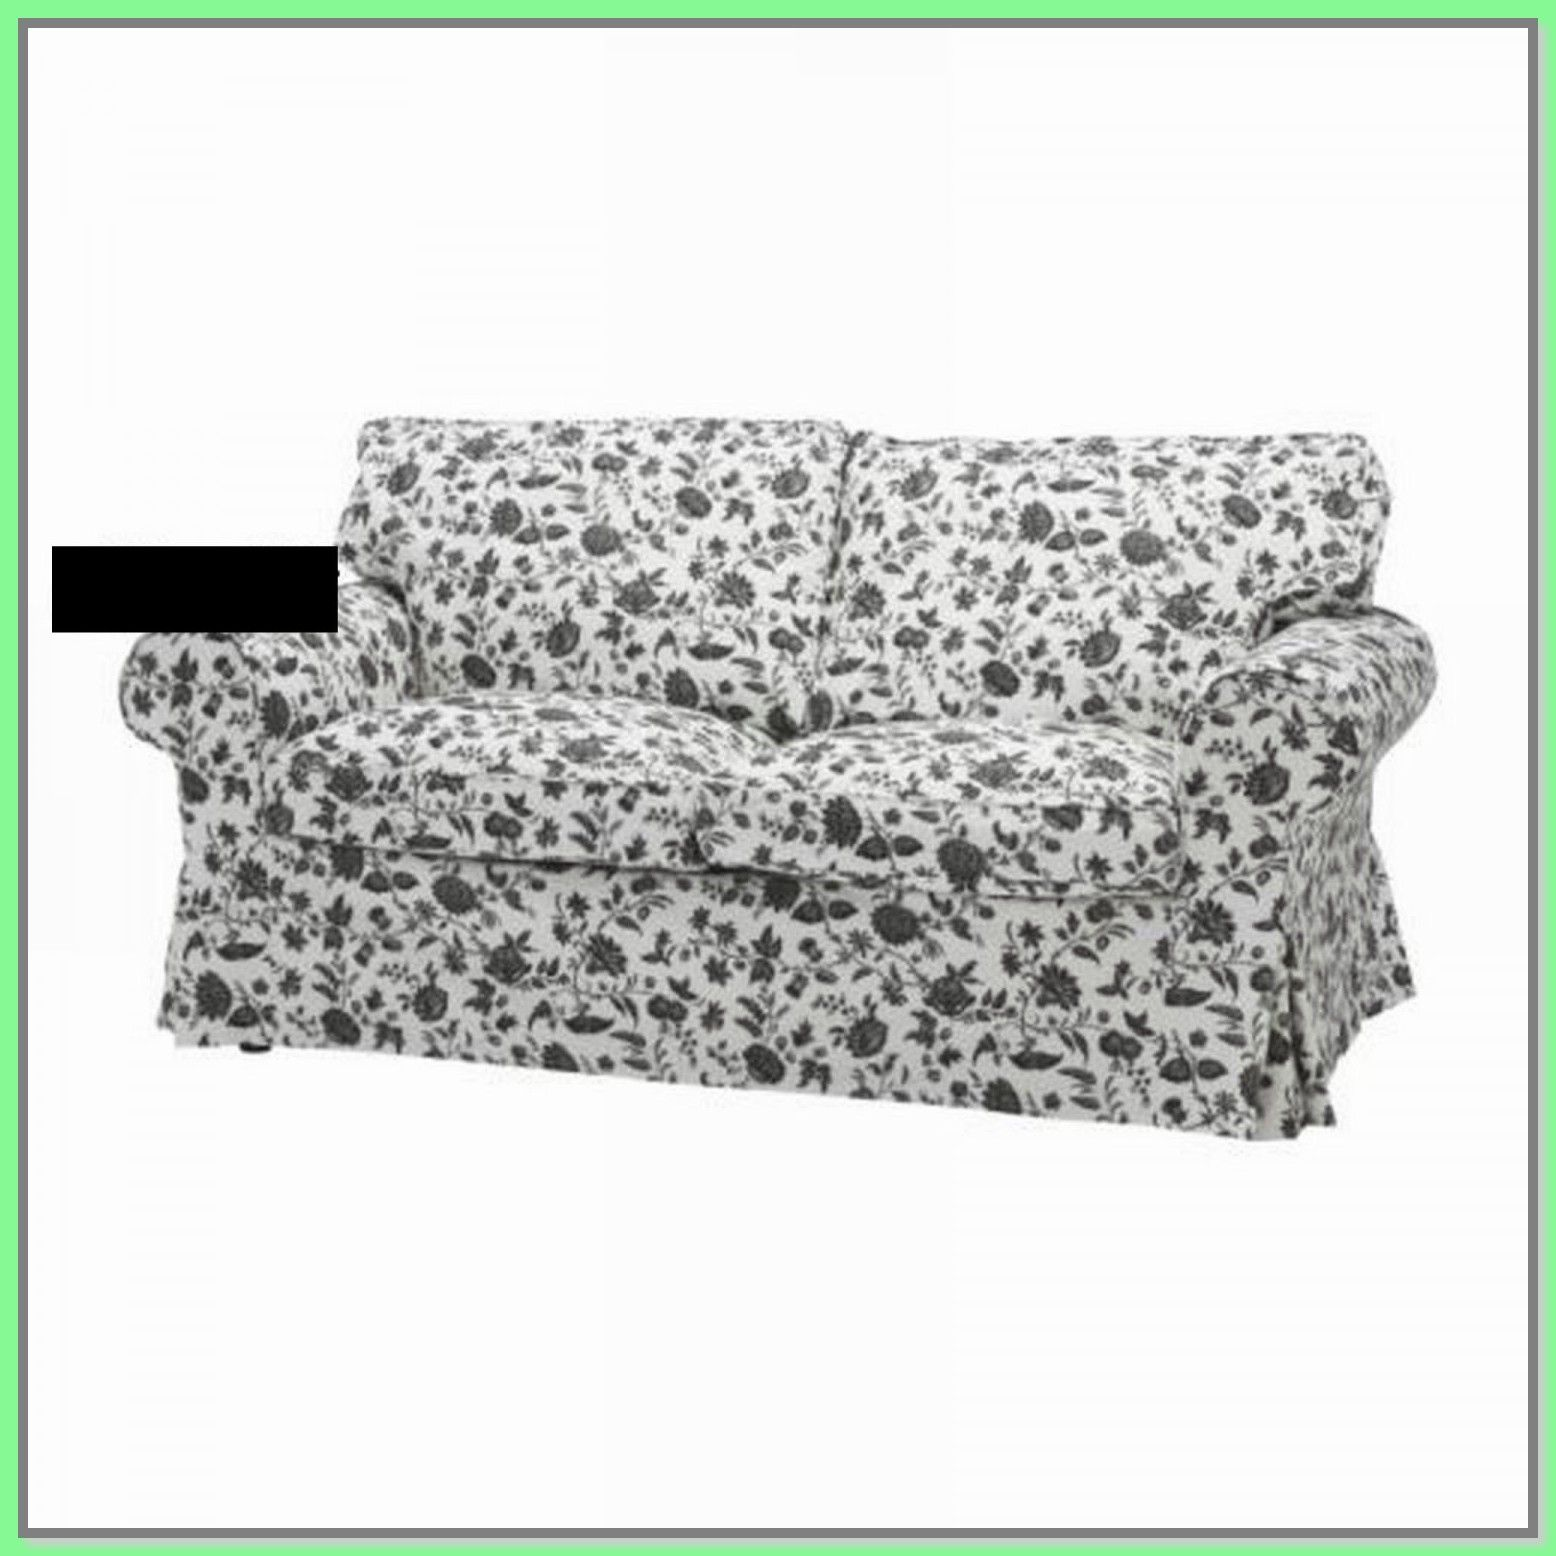 49 Reference Of Sofa Cover Black And White In 2020 Ektorp Sofa Cover Ektorp Sofa Bed White Sofa Bed